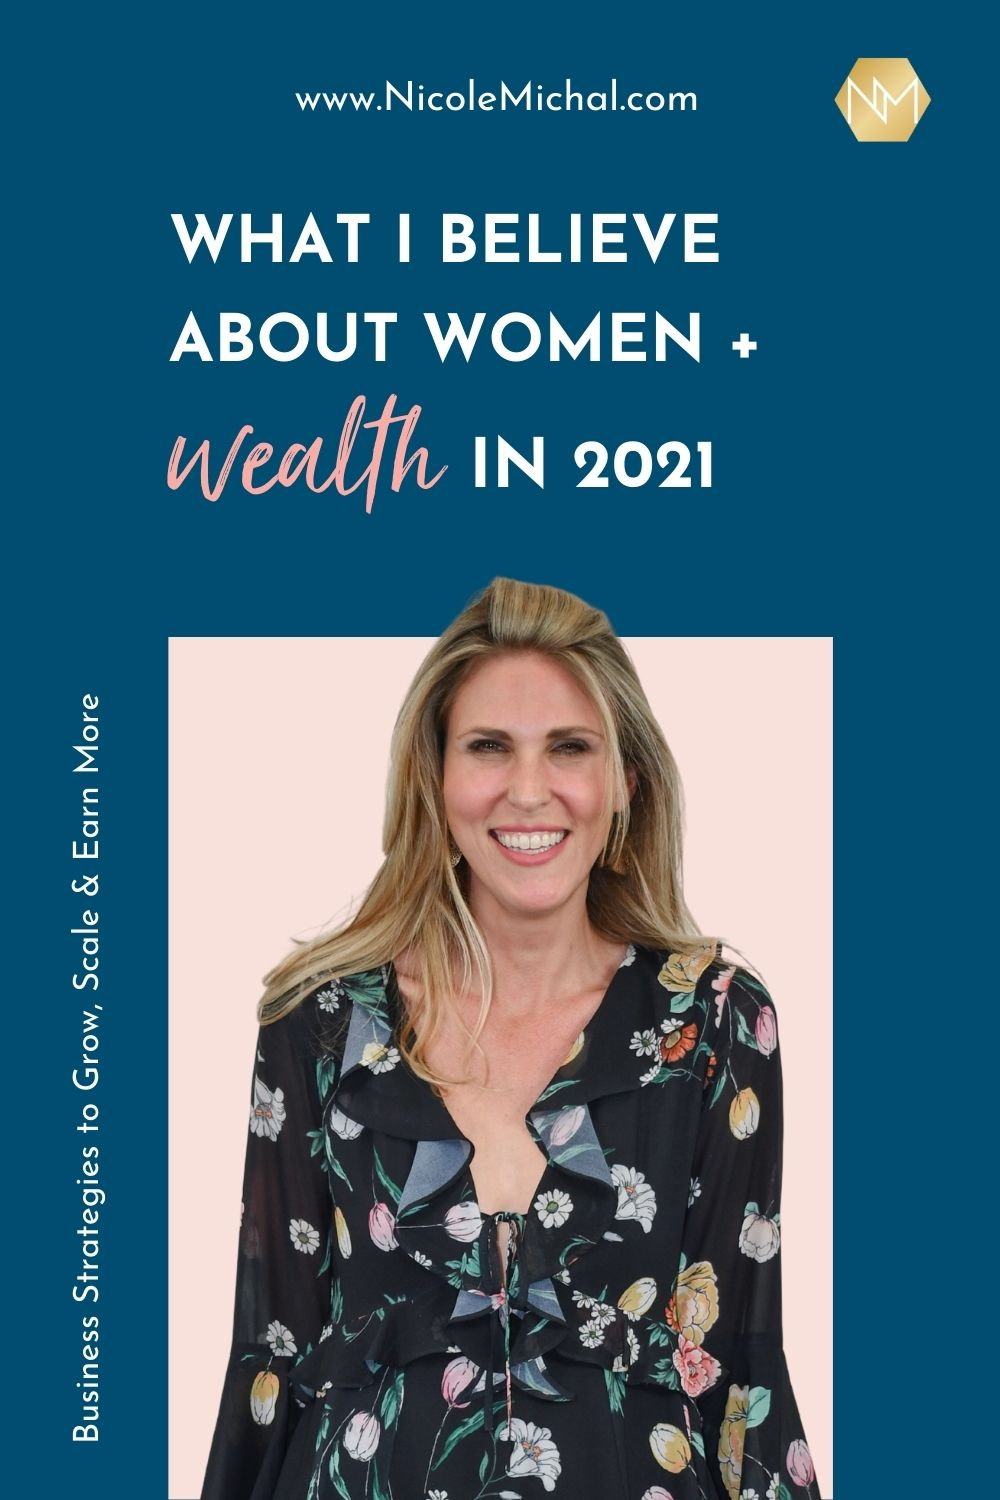 What I Believe About Women + Wealth in 2021